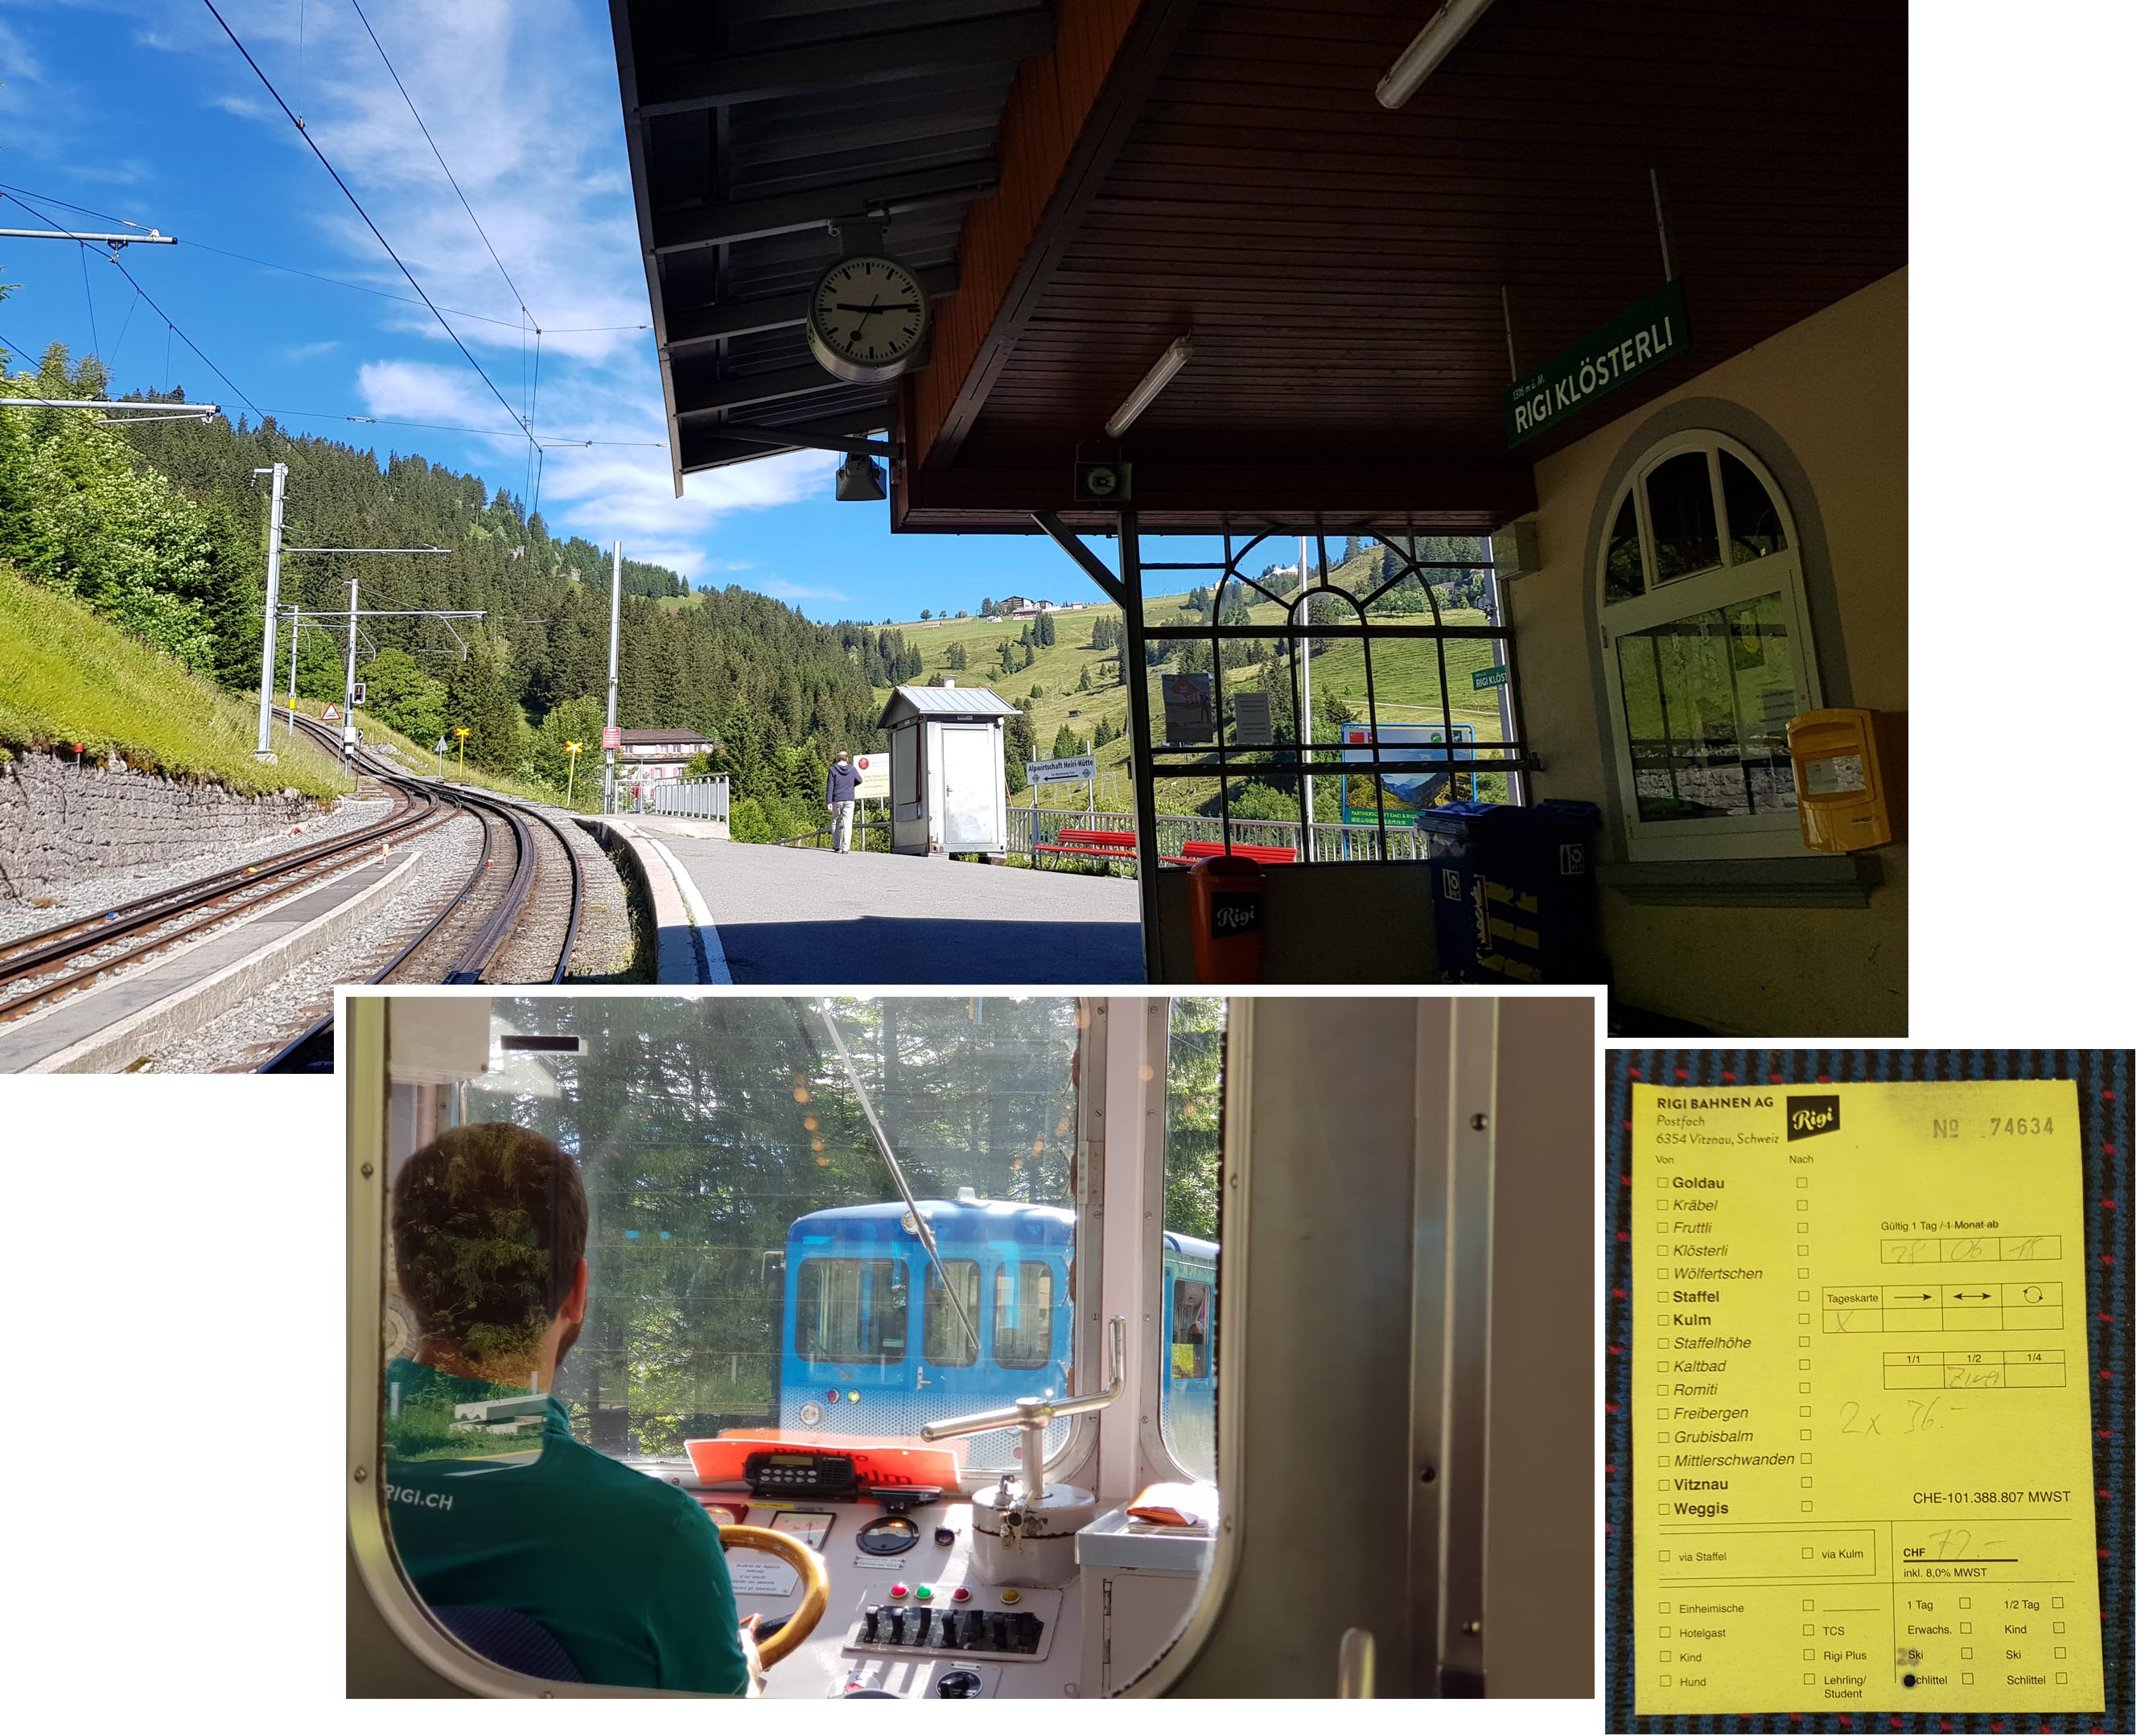 Purchased the Rigi Day Passes (in the form of a receipt) from the train driver